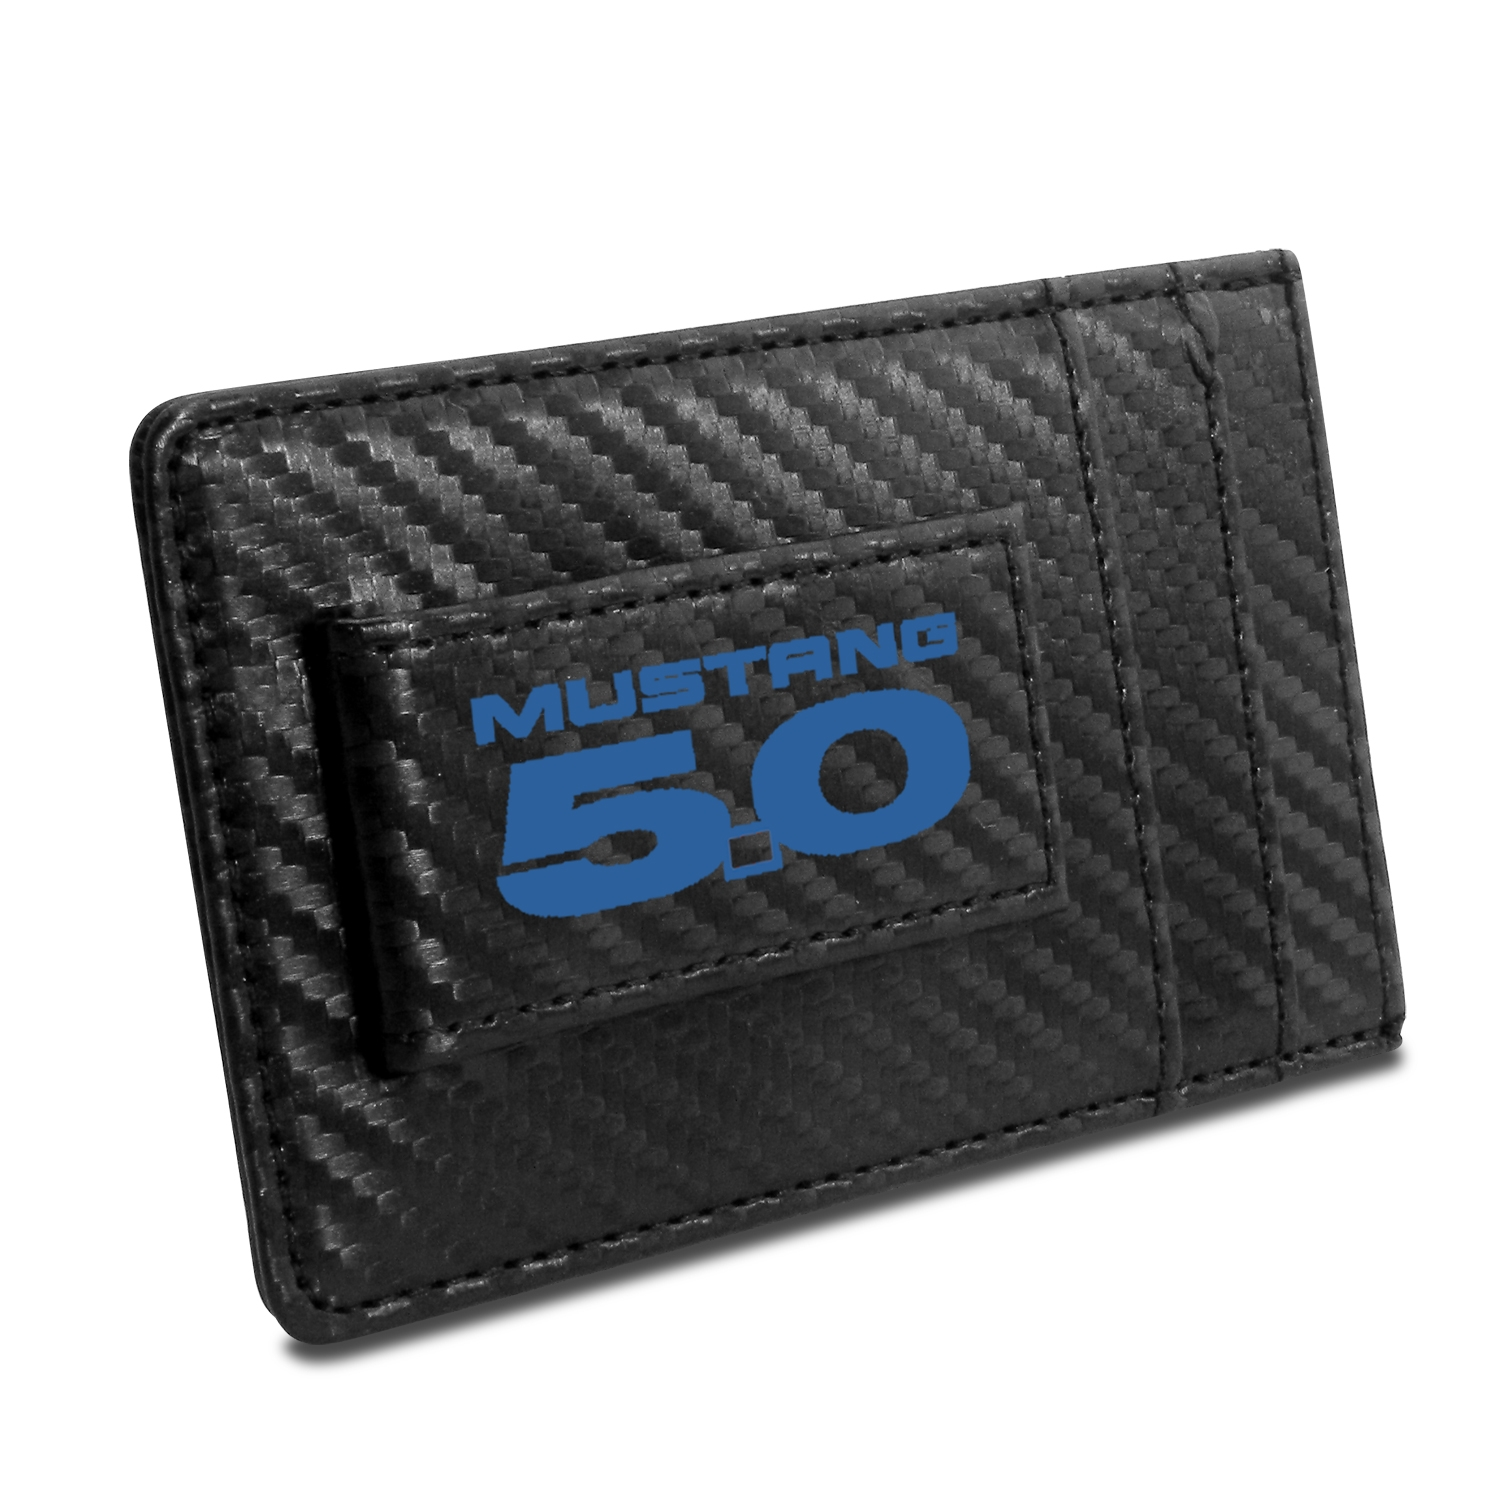 Ford Mustang 5.0 in Blue Black Carbon Fiber RFID Card Holder Wallet